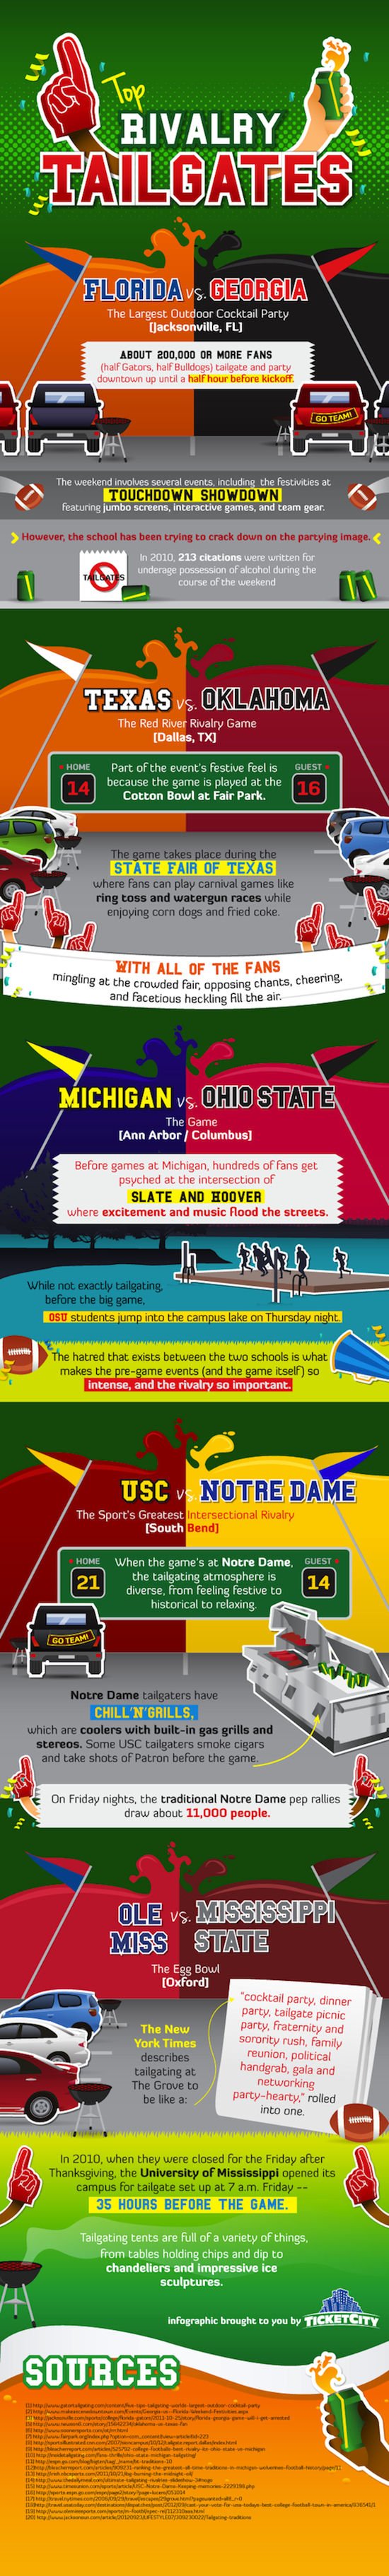 tailgating-the-rivalries-of-college-football_50a405747fffe